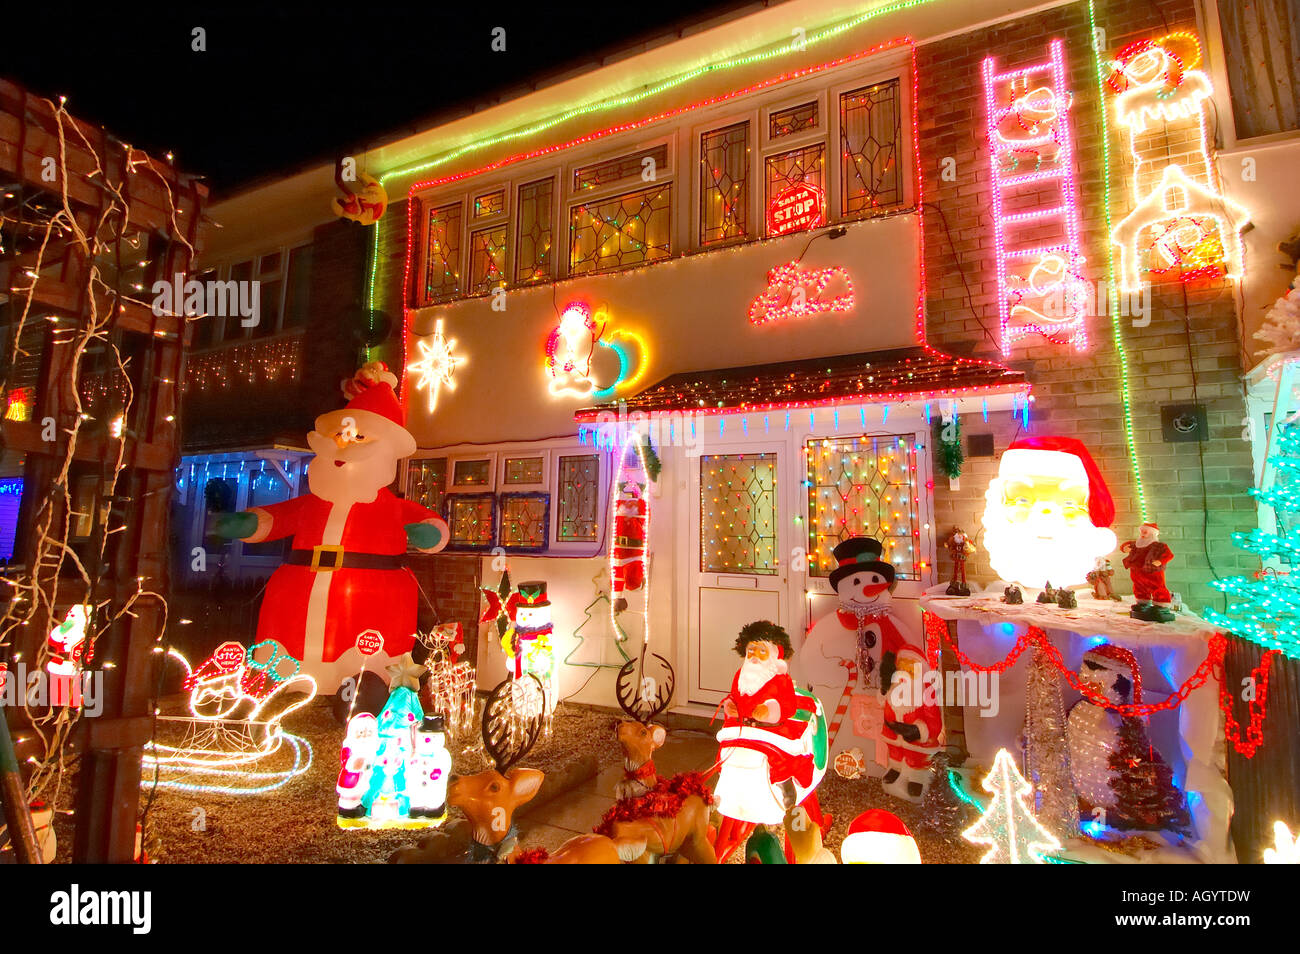 row of council houses with illuminated christmas decorations stock image